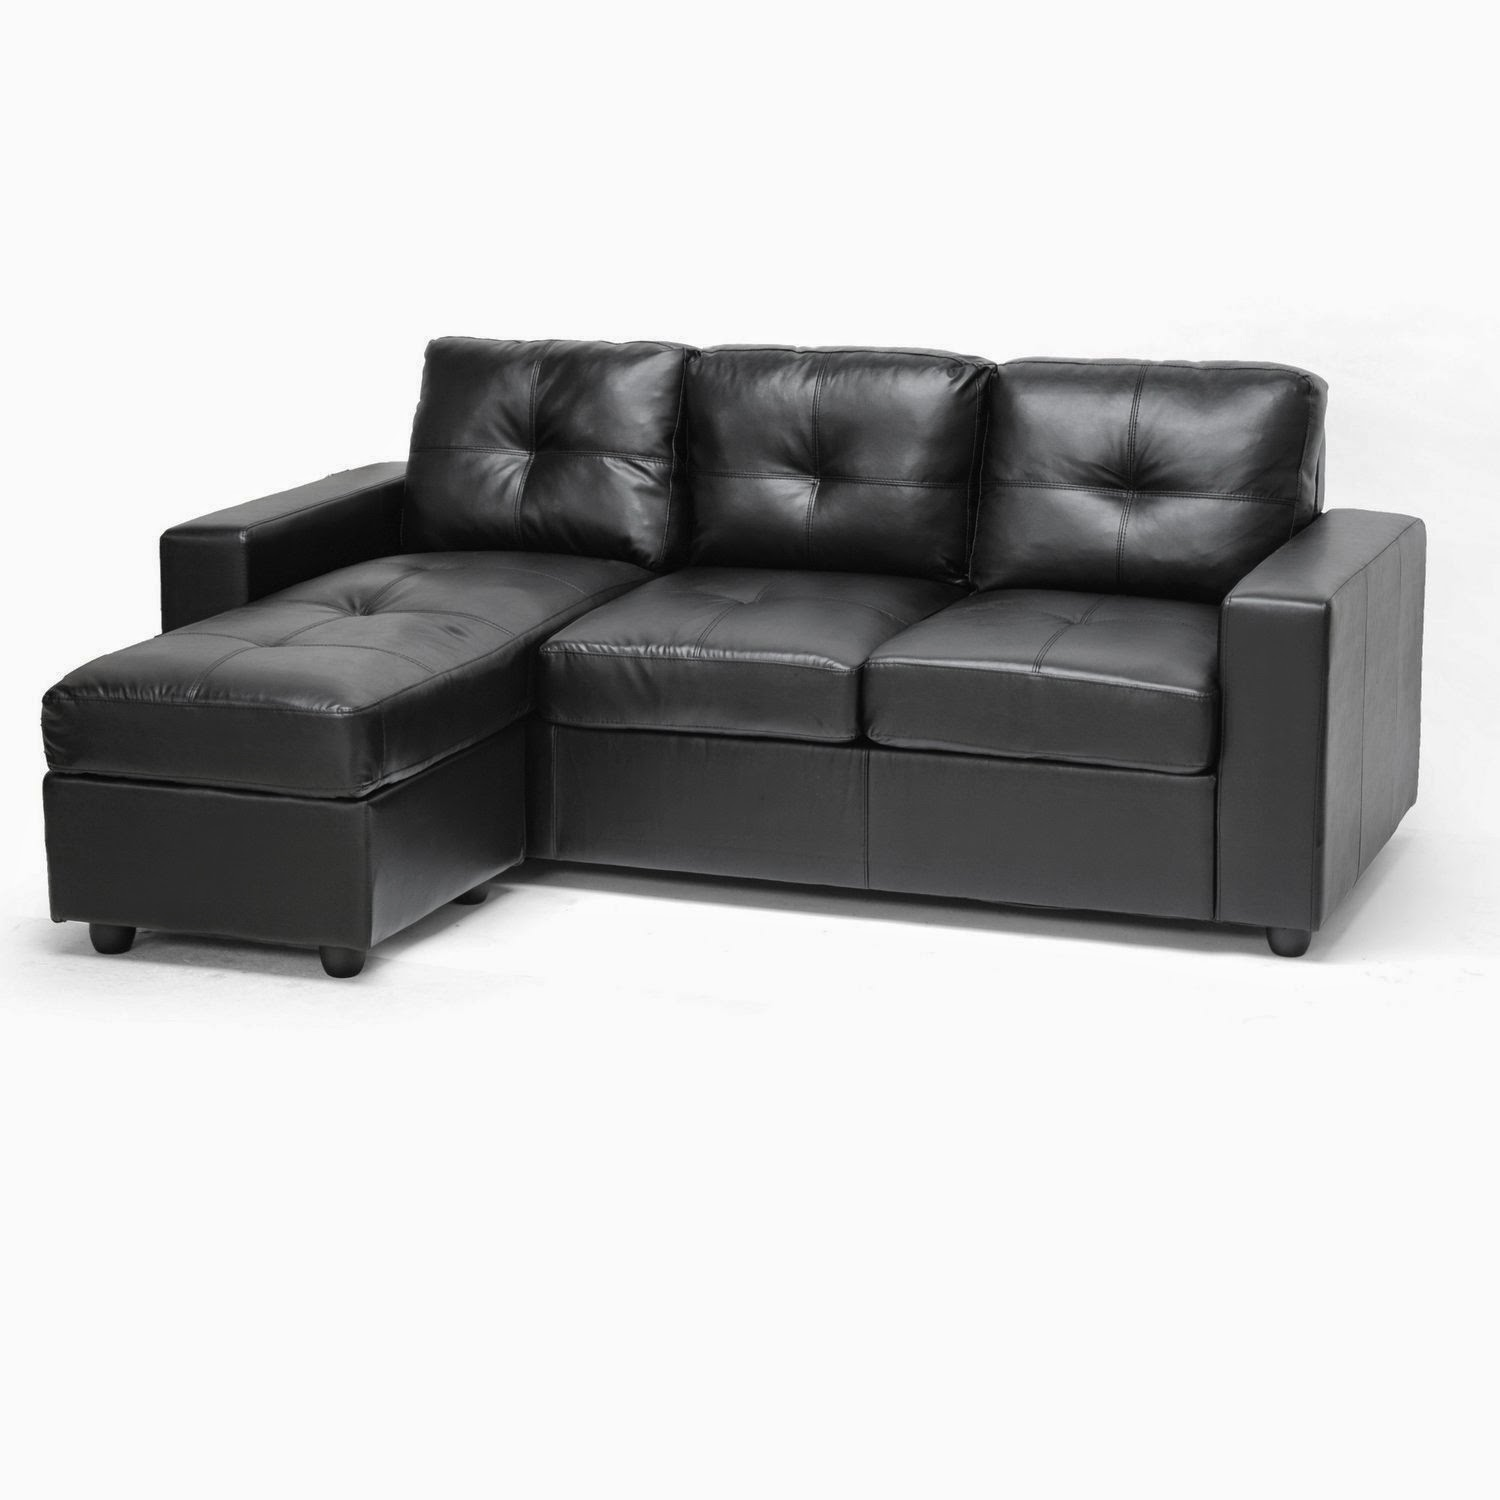 Black Leather Sofa Set Cheap Nora Brown Reclining 3 Pc 3700 Couch